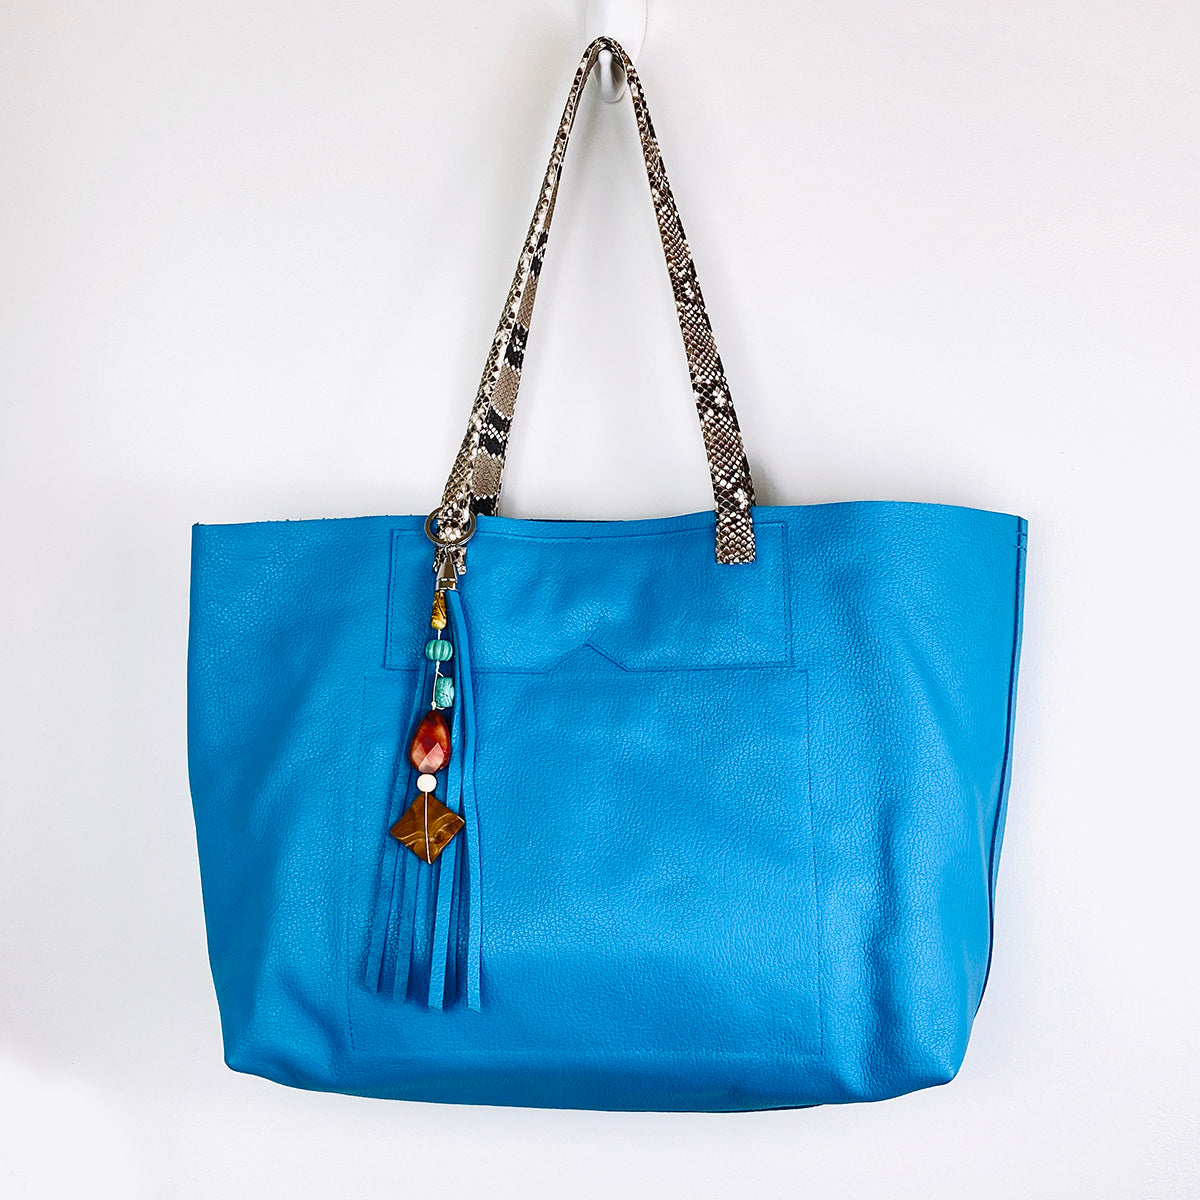 BRUNY CERULEAN GENUINE LEATHER TOTE, SNAKESKIN, STONE TASSEL